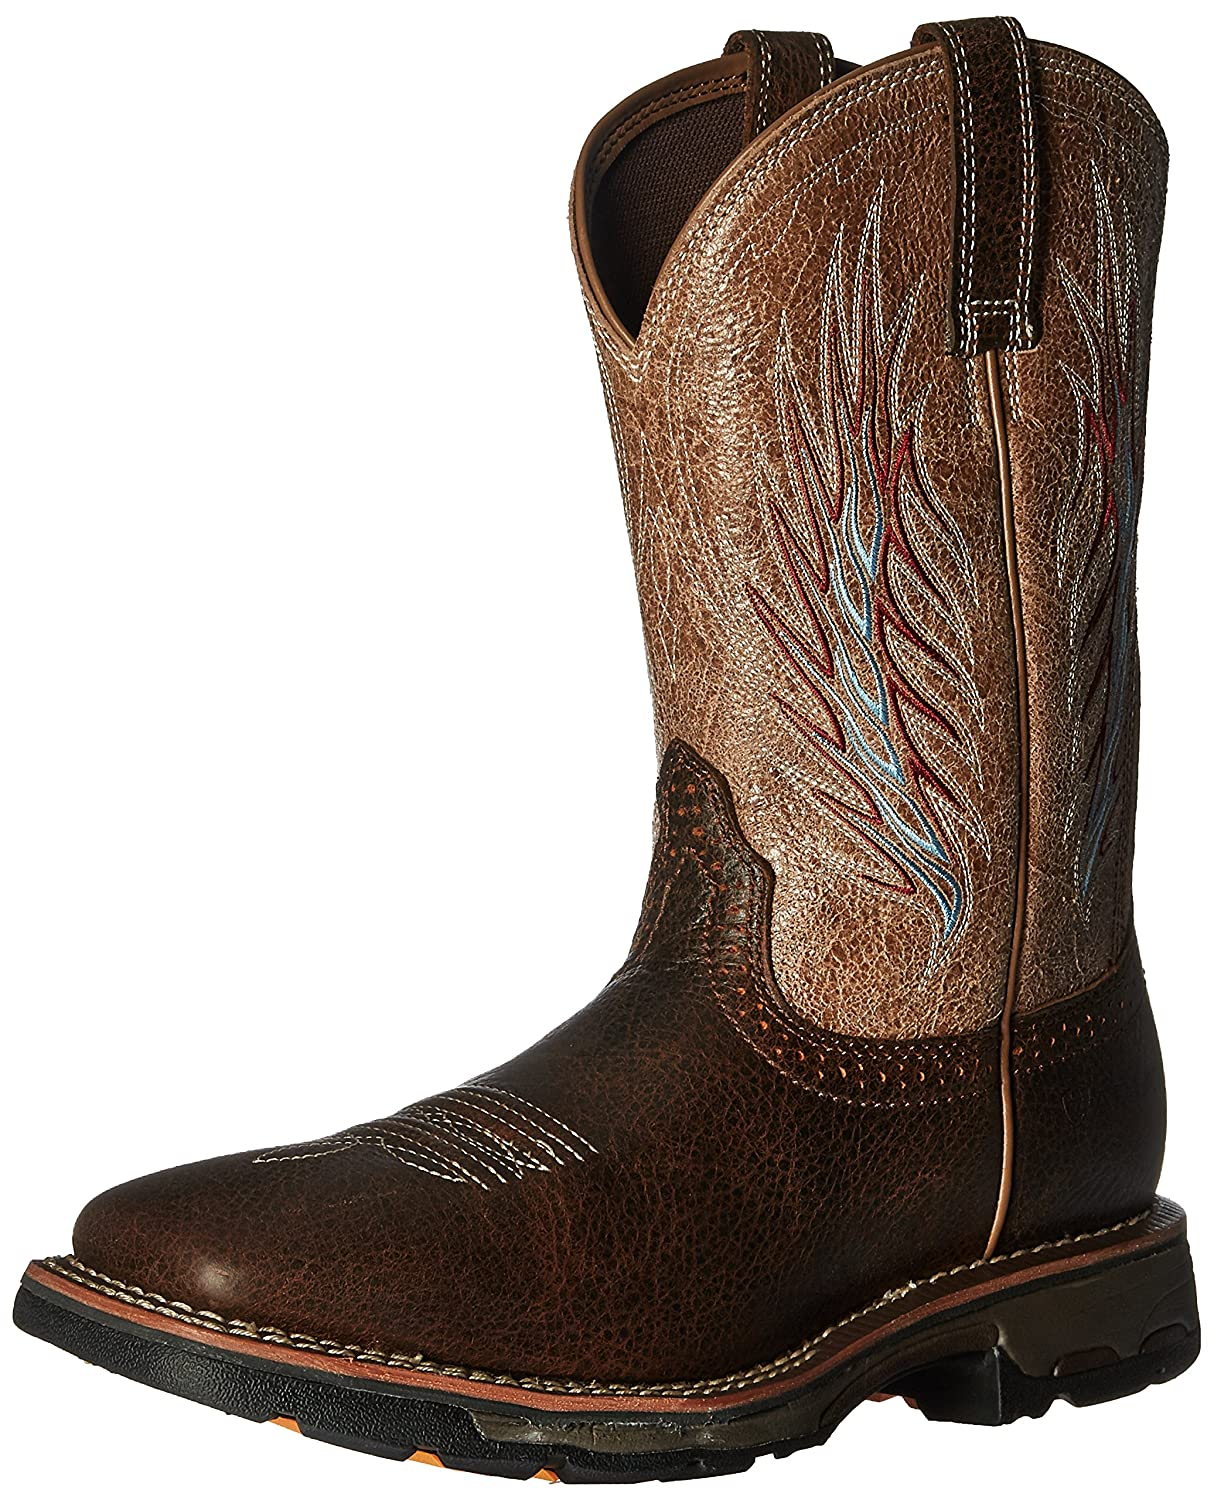 Ariat メンズ B01BL5ZZT8 11 2E US|Rustic Brown/Stone Rustic Brown/Stone 11 2E US